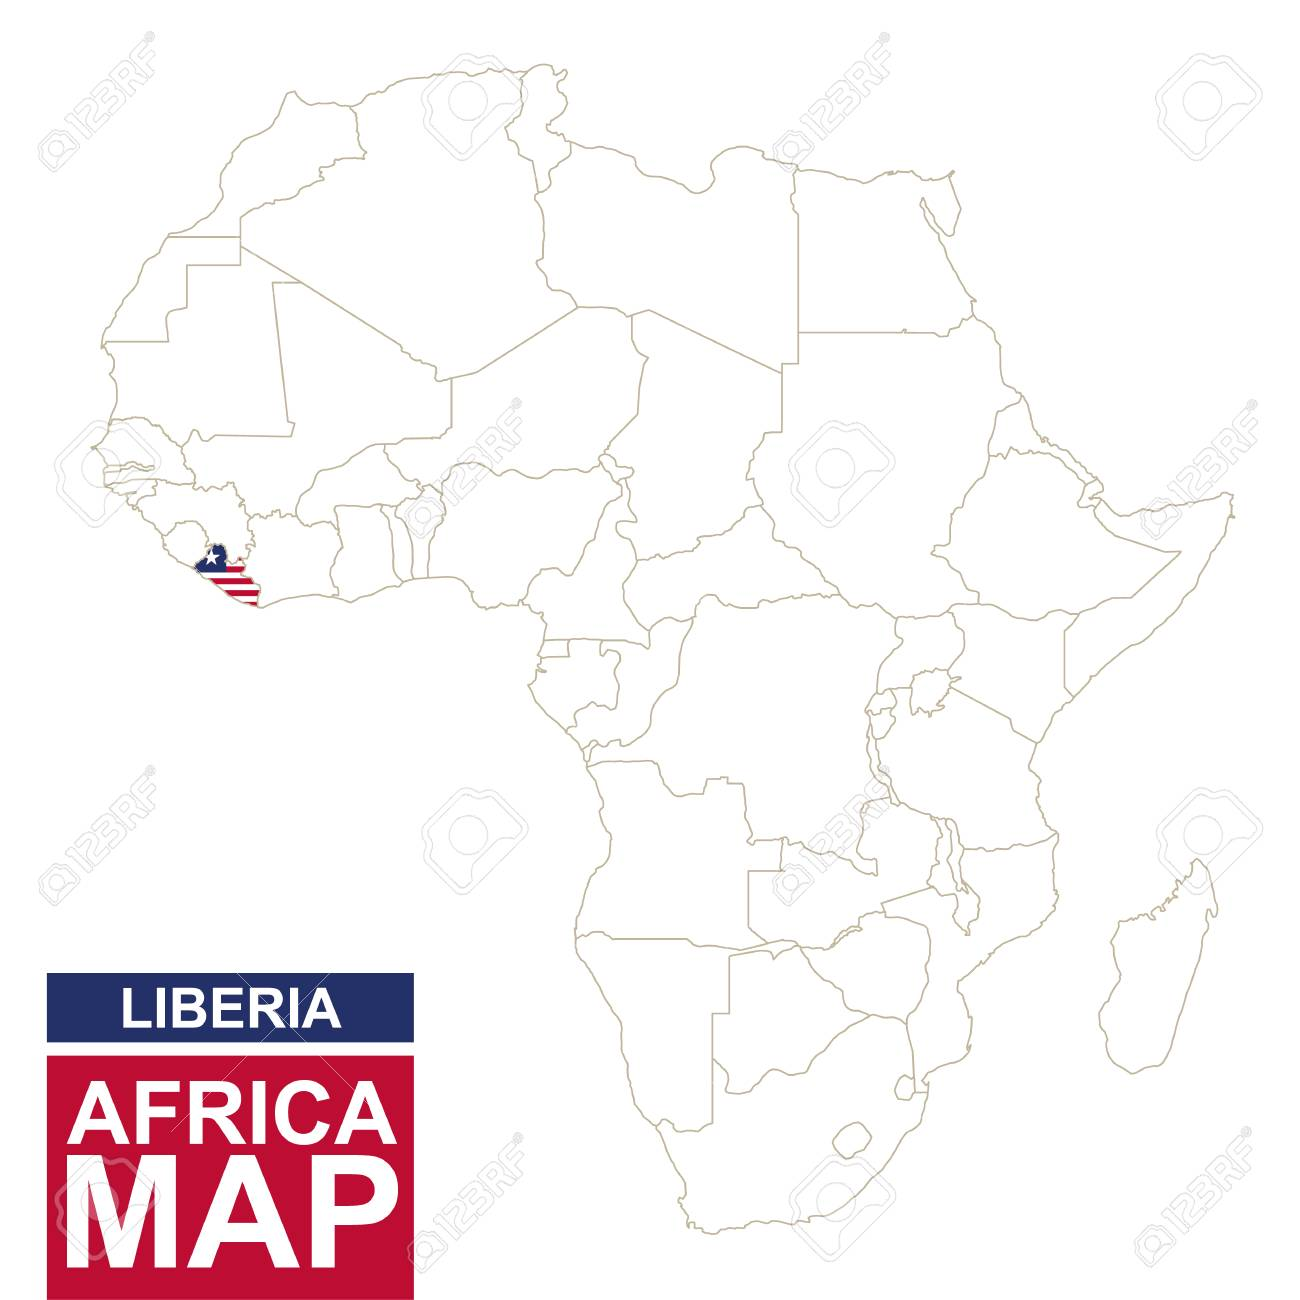 Liberia On Africa Map.Africa Contoured Map With Highlighted Liberia Liberia Map And